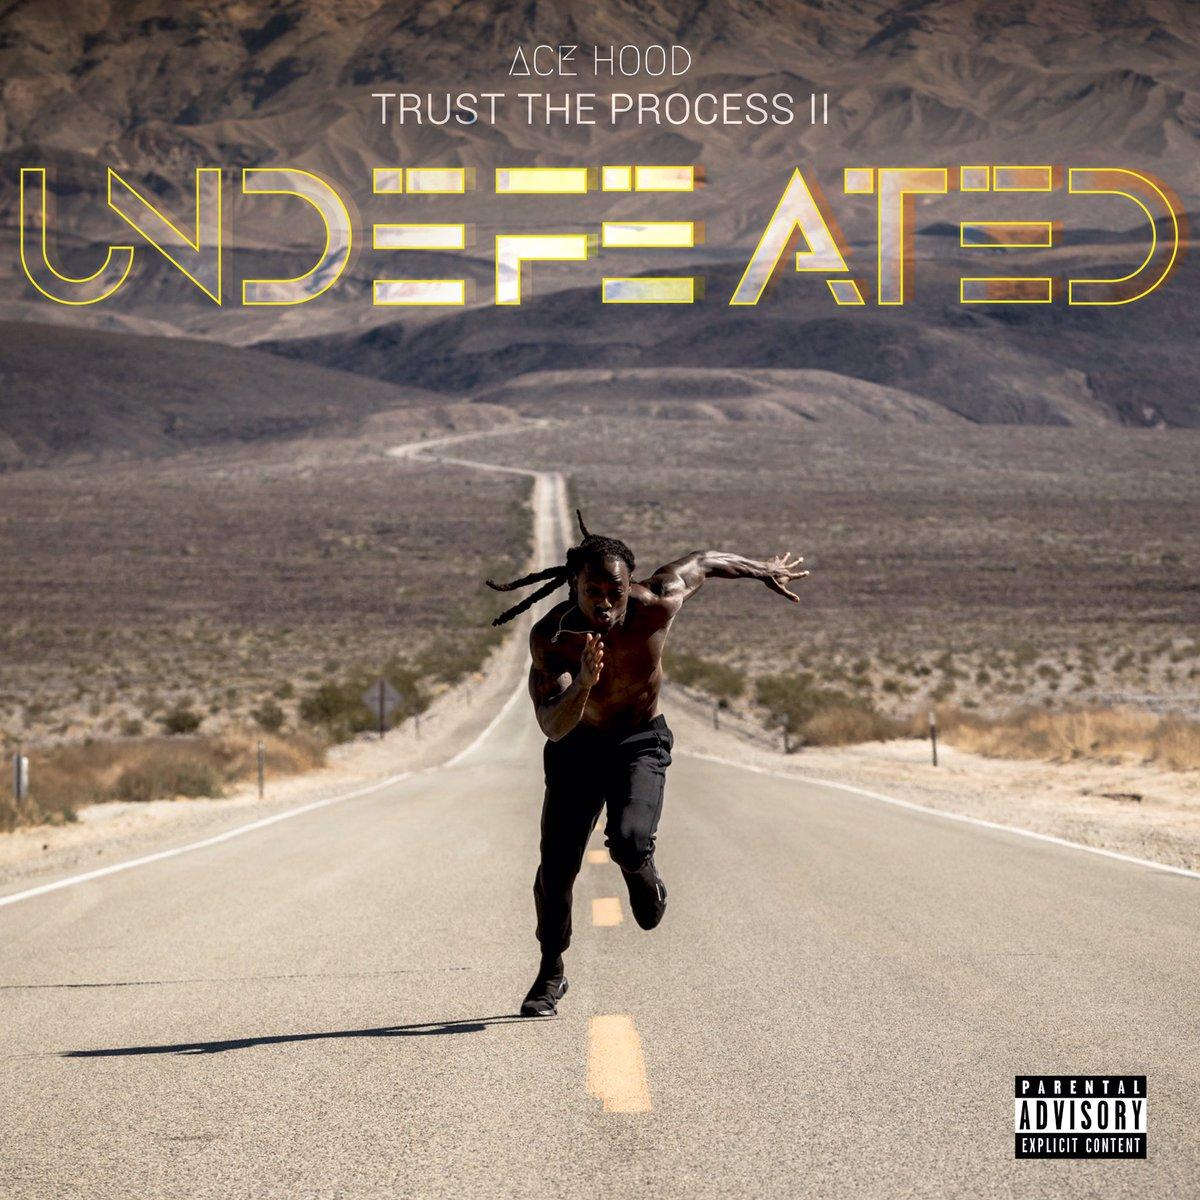 Ace Hood - Trust The Process II: Undefeated Album Download